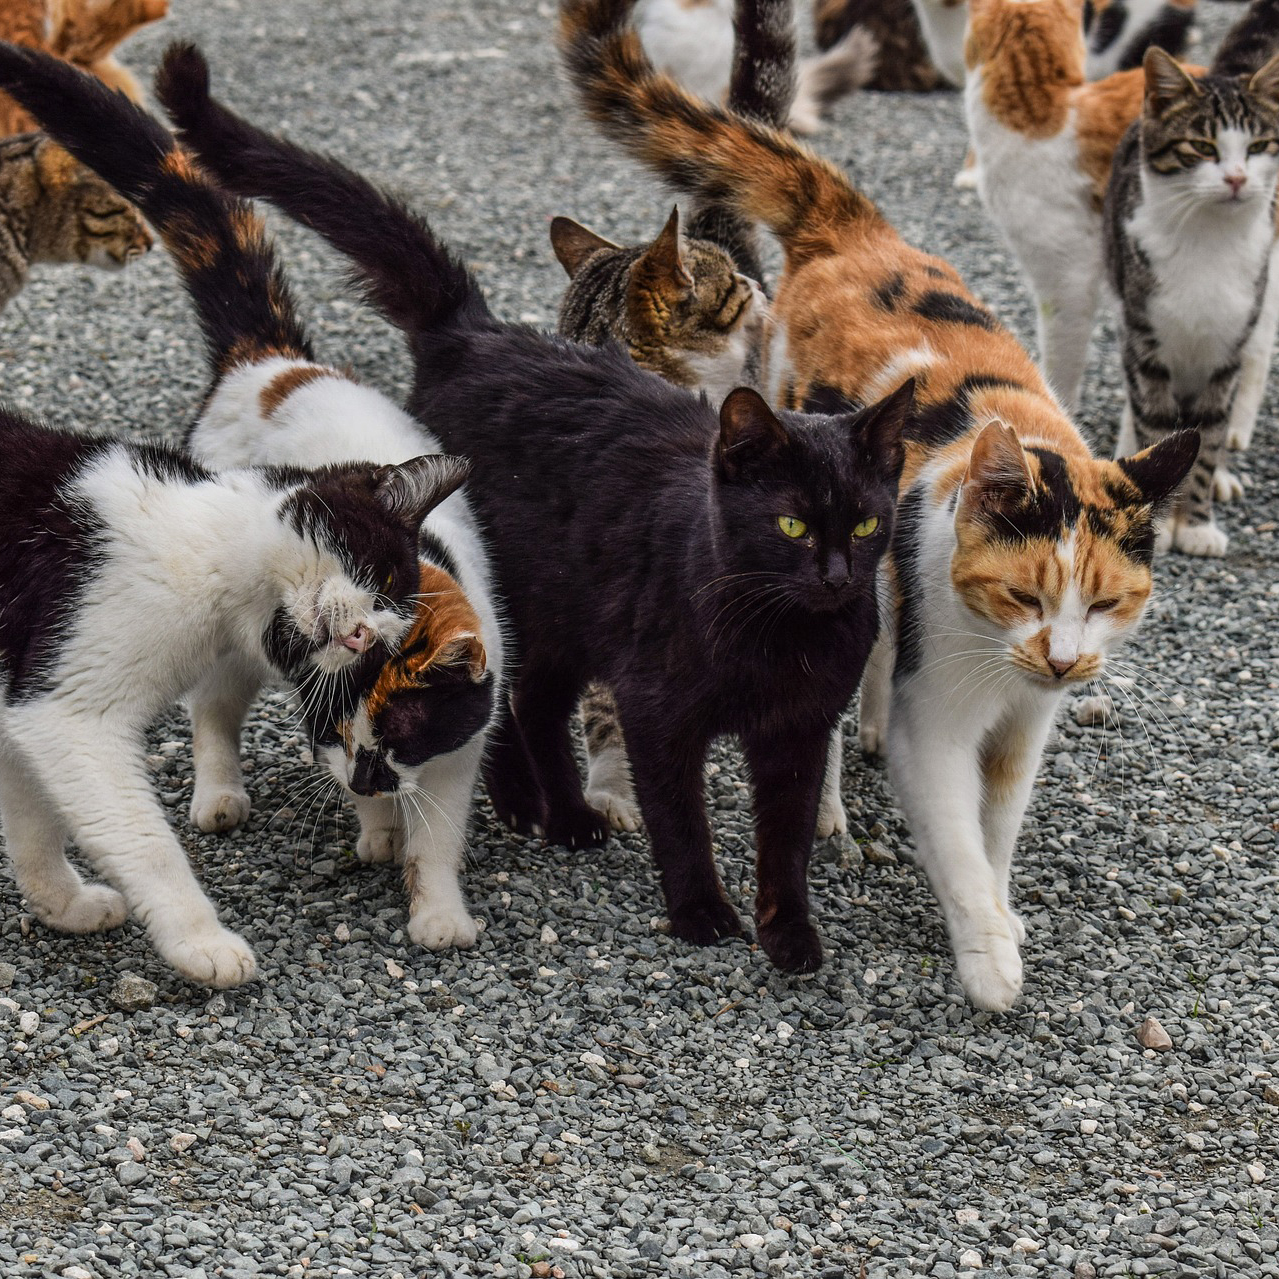 A large group of dirty and ragged looking calico cats roams the street.